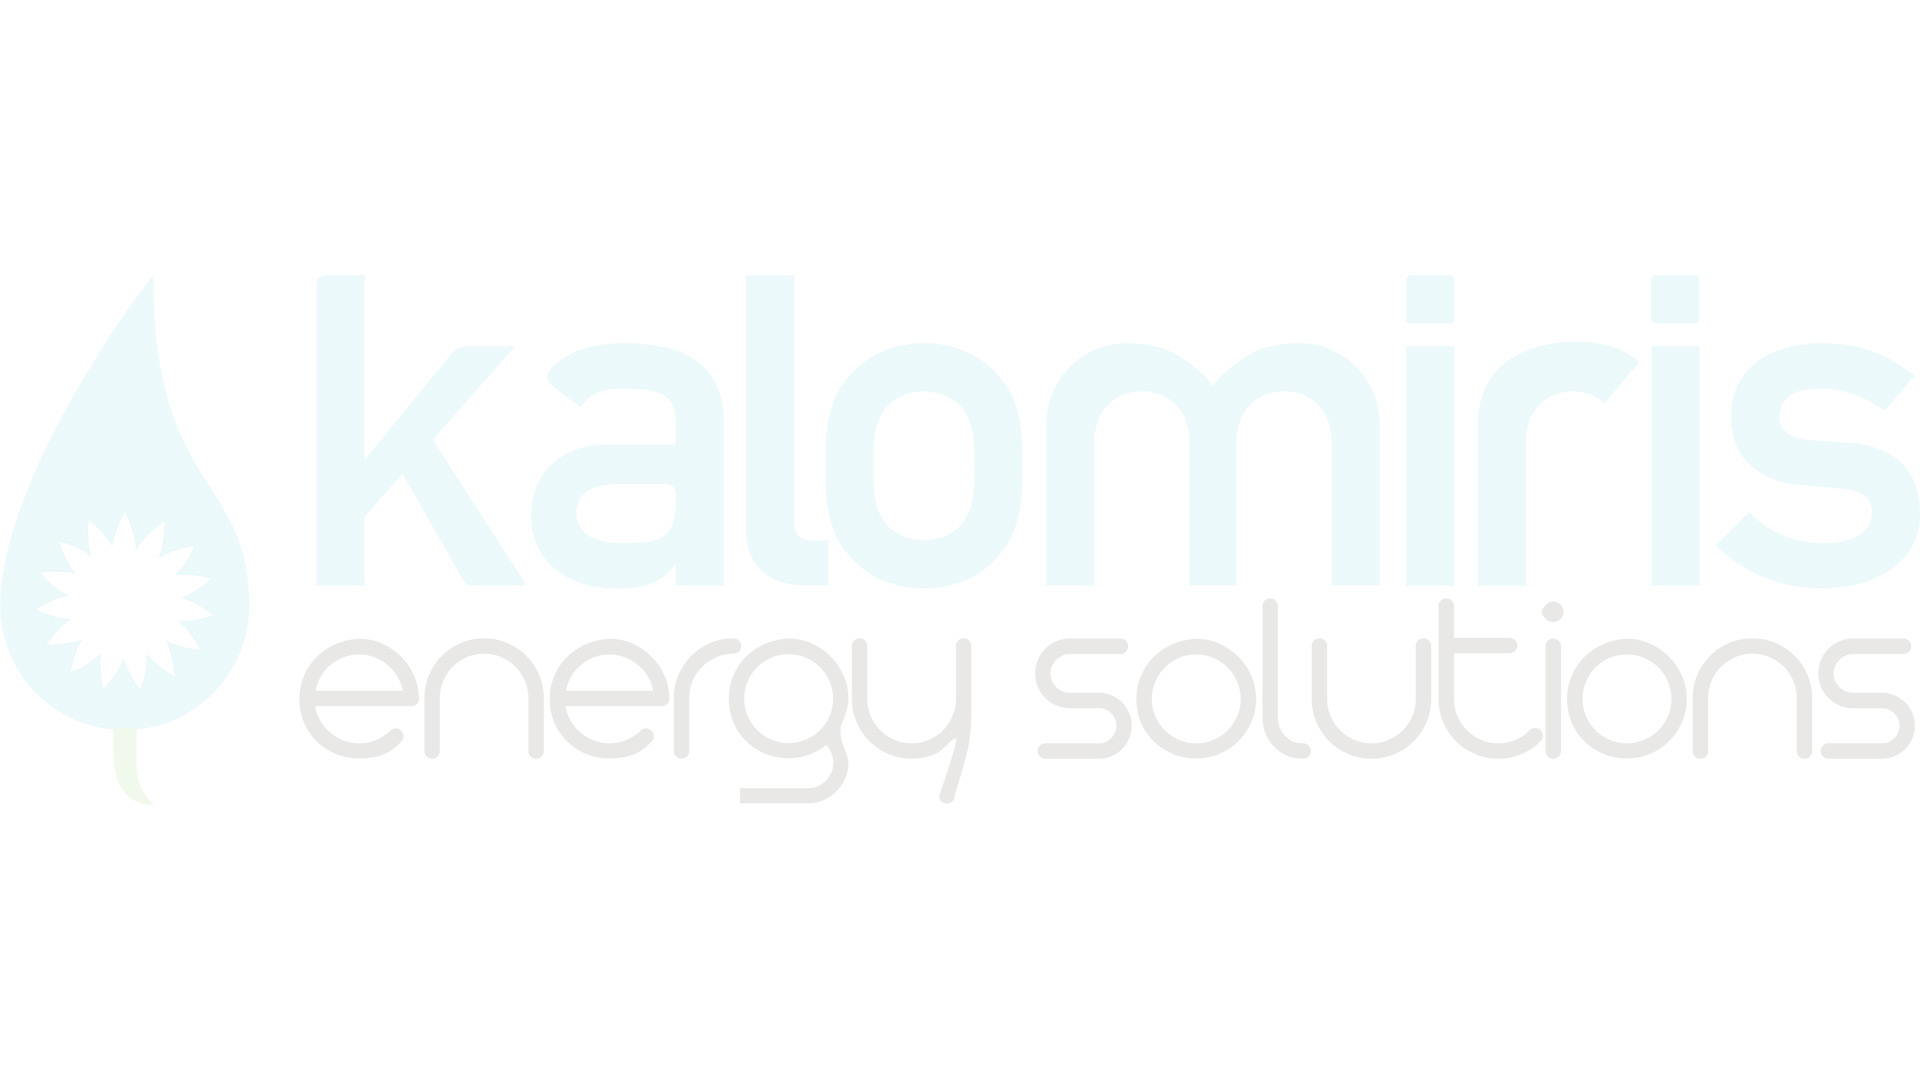 Ceiling Fan CASAFAN ECO AVIATOS 132 BN-AH 52 (132cm)